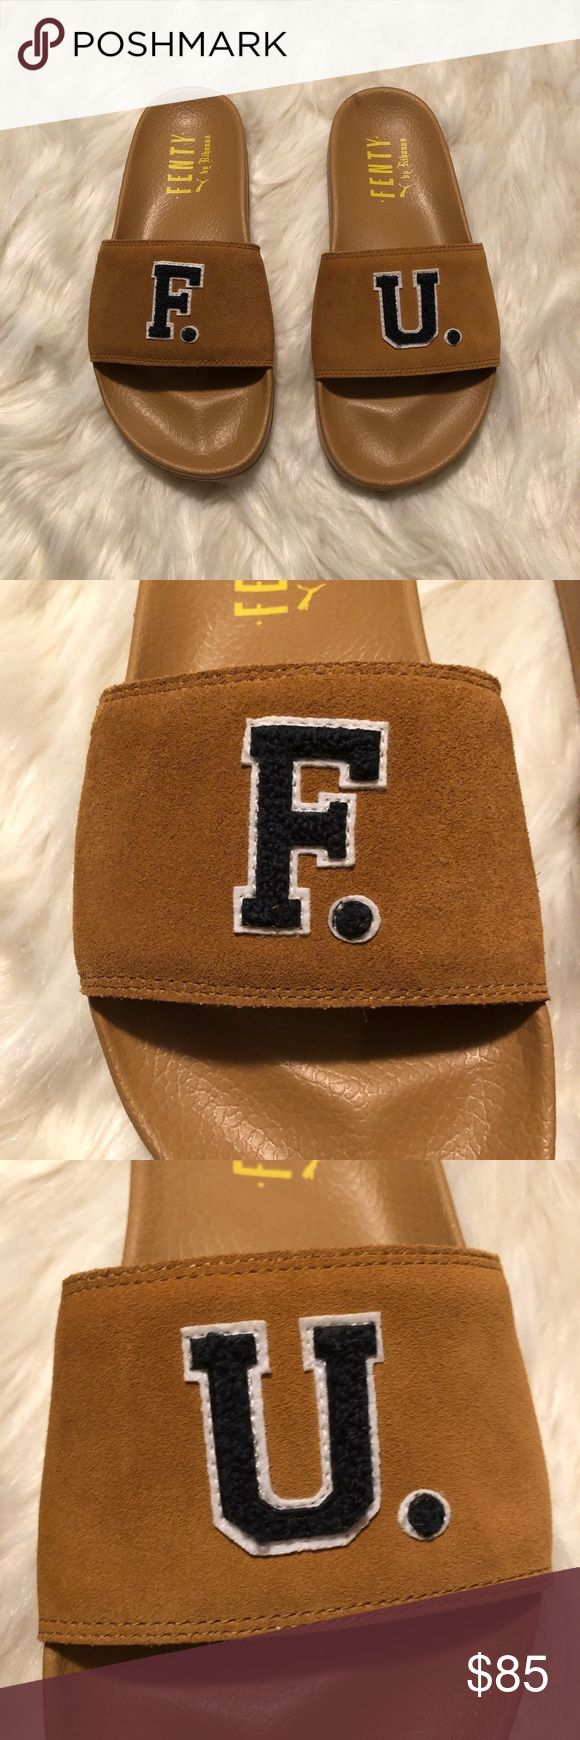 "NWT Puma Fenty by Rihanna Suede Slide Sandals New in box and with dust bag. These sandals are described as a unisex style and are listed a men's size 7 which is equivalent to a women's size 9 according to the Puma website. There is a small indention that is pictured on photo #5 other than that they are in excellent new condition  Details are as follows: -Color : Golden Brown- Scarab -Full suede strap featuring ""F"" and ""U"" badges made of a luxe chenille fabric -Outsole made of durable…"